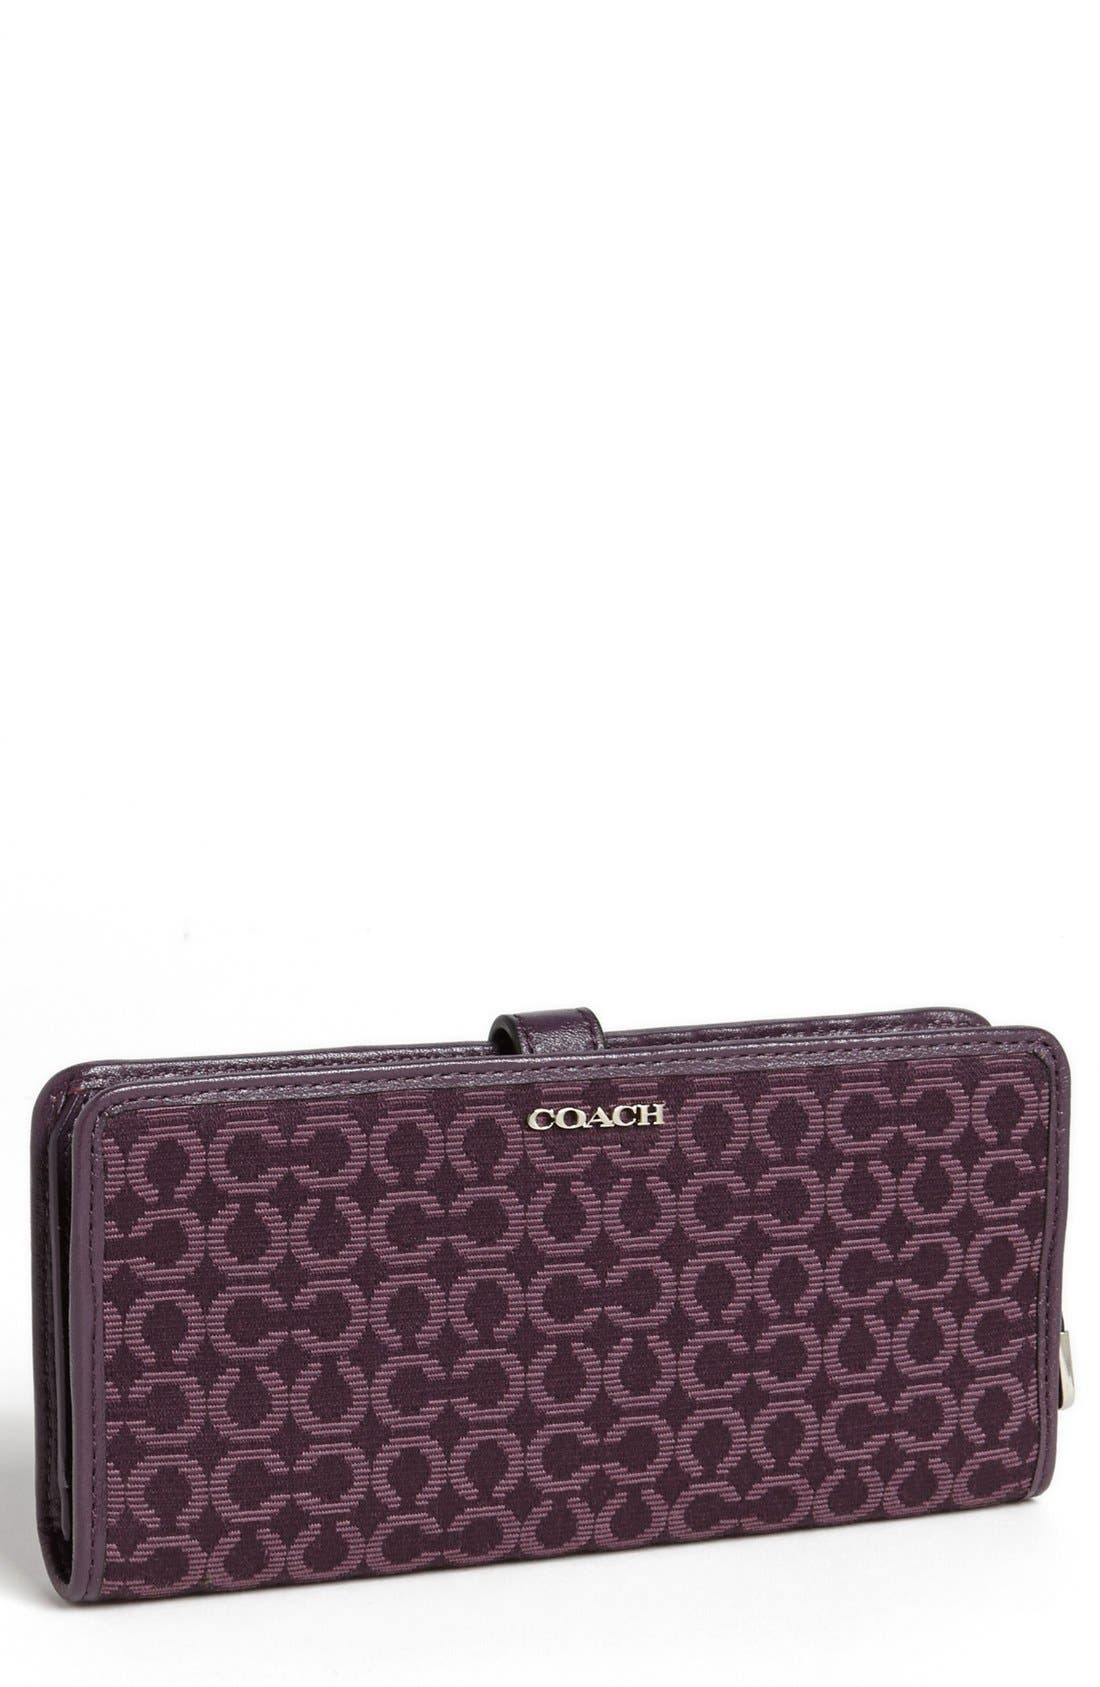 Alternate Image 1 Selected - COACH 'Madison - Skinny' Wallet